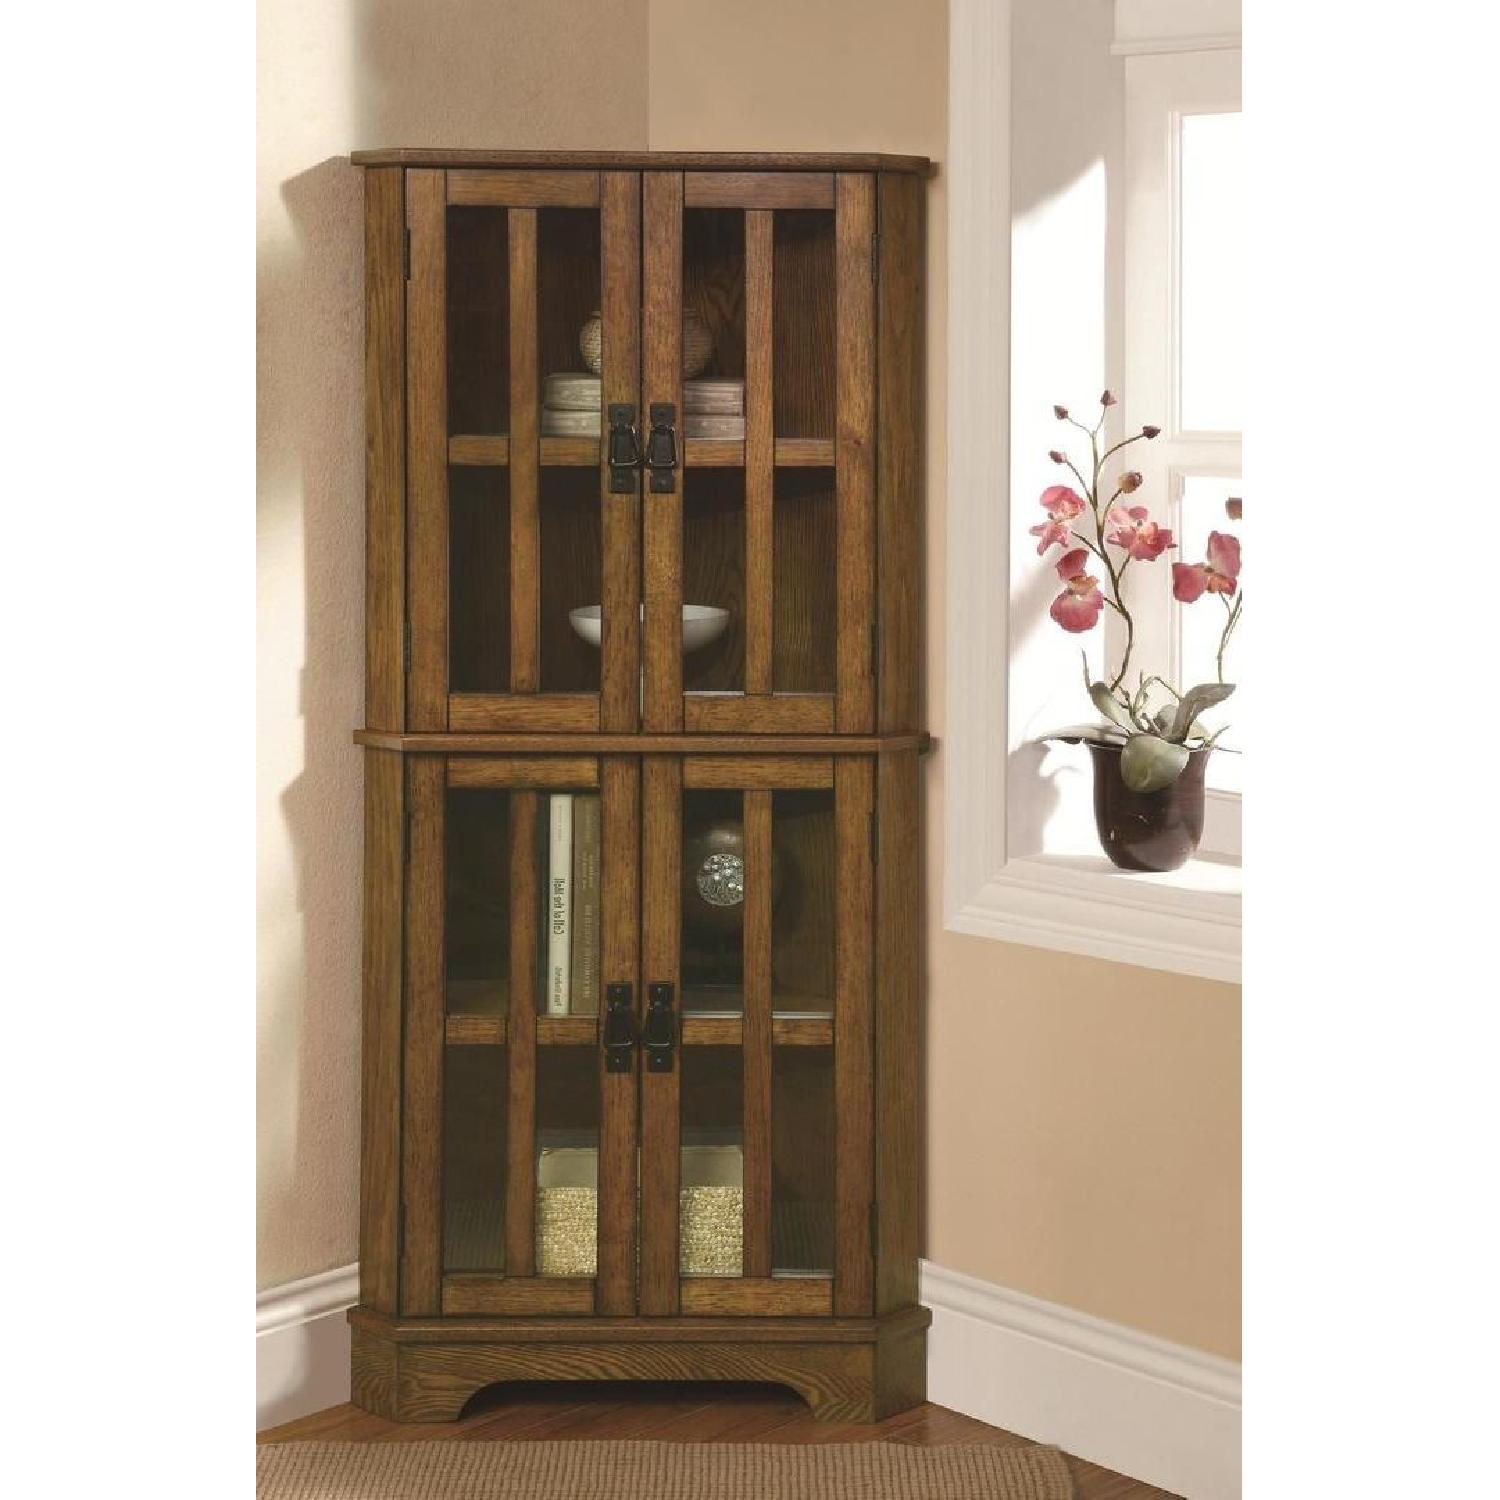 Curio Cabinet in Golden Brown Finish w/ Storage Shelves - image-2